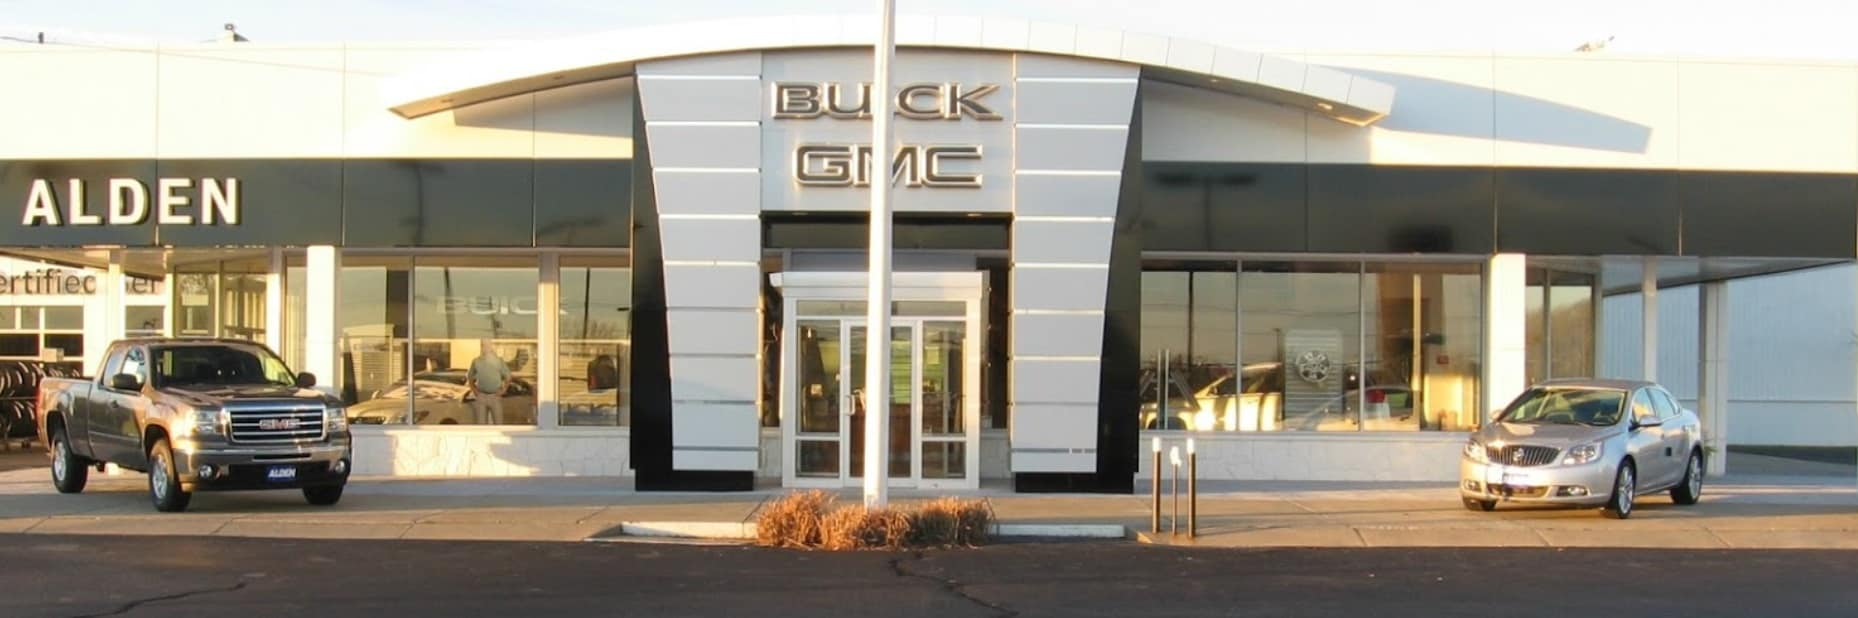 alden buick gmc is a fairhaven buick gmc dealer and a new car and used car fairhaven ma buick gmc dealership value your trade alden buick gmc is a fairhaven buick